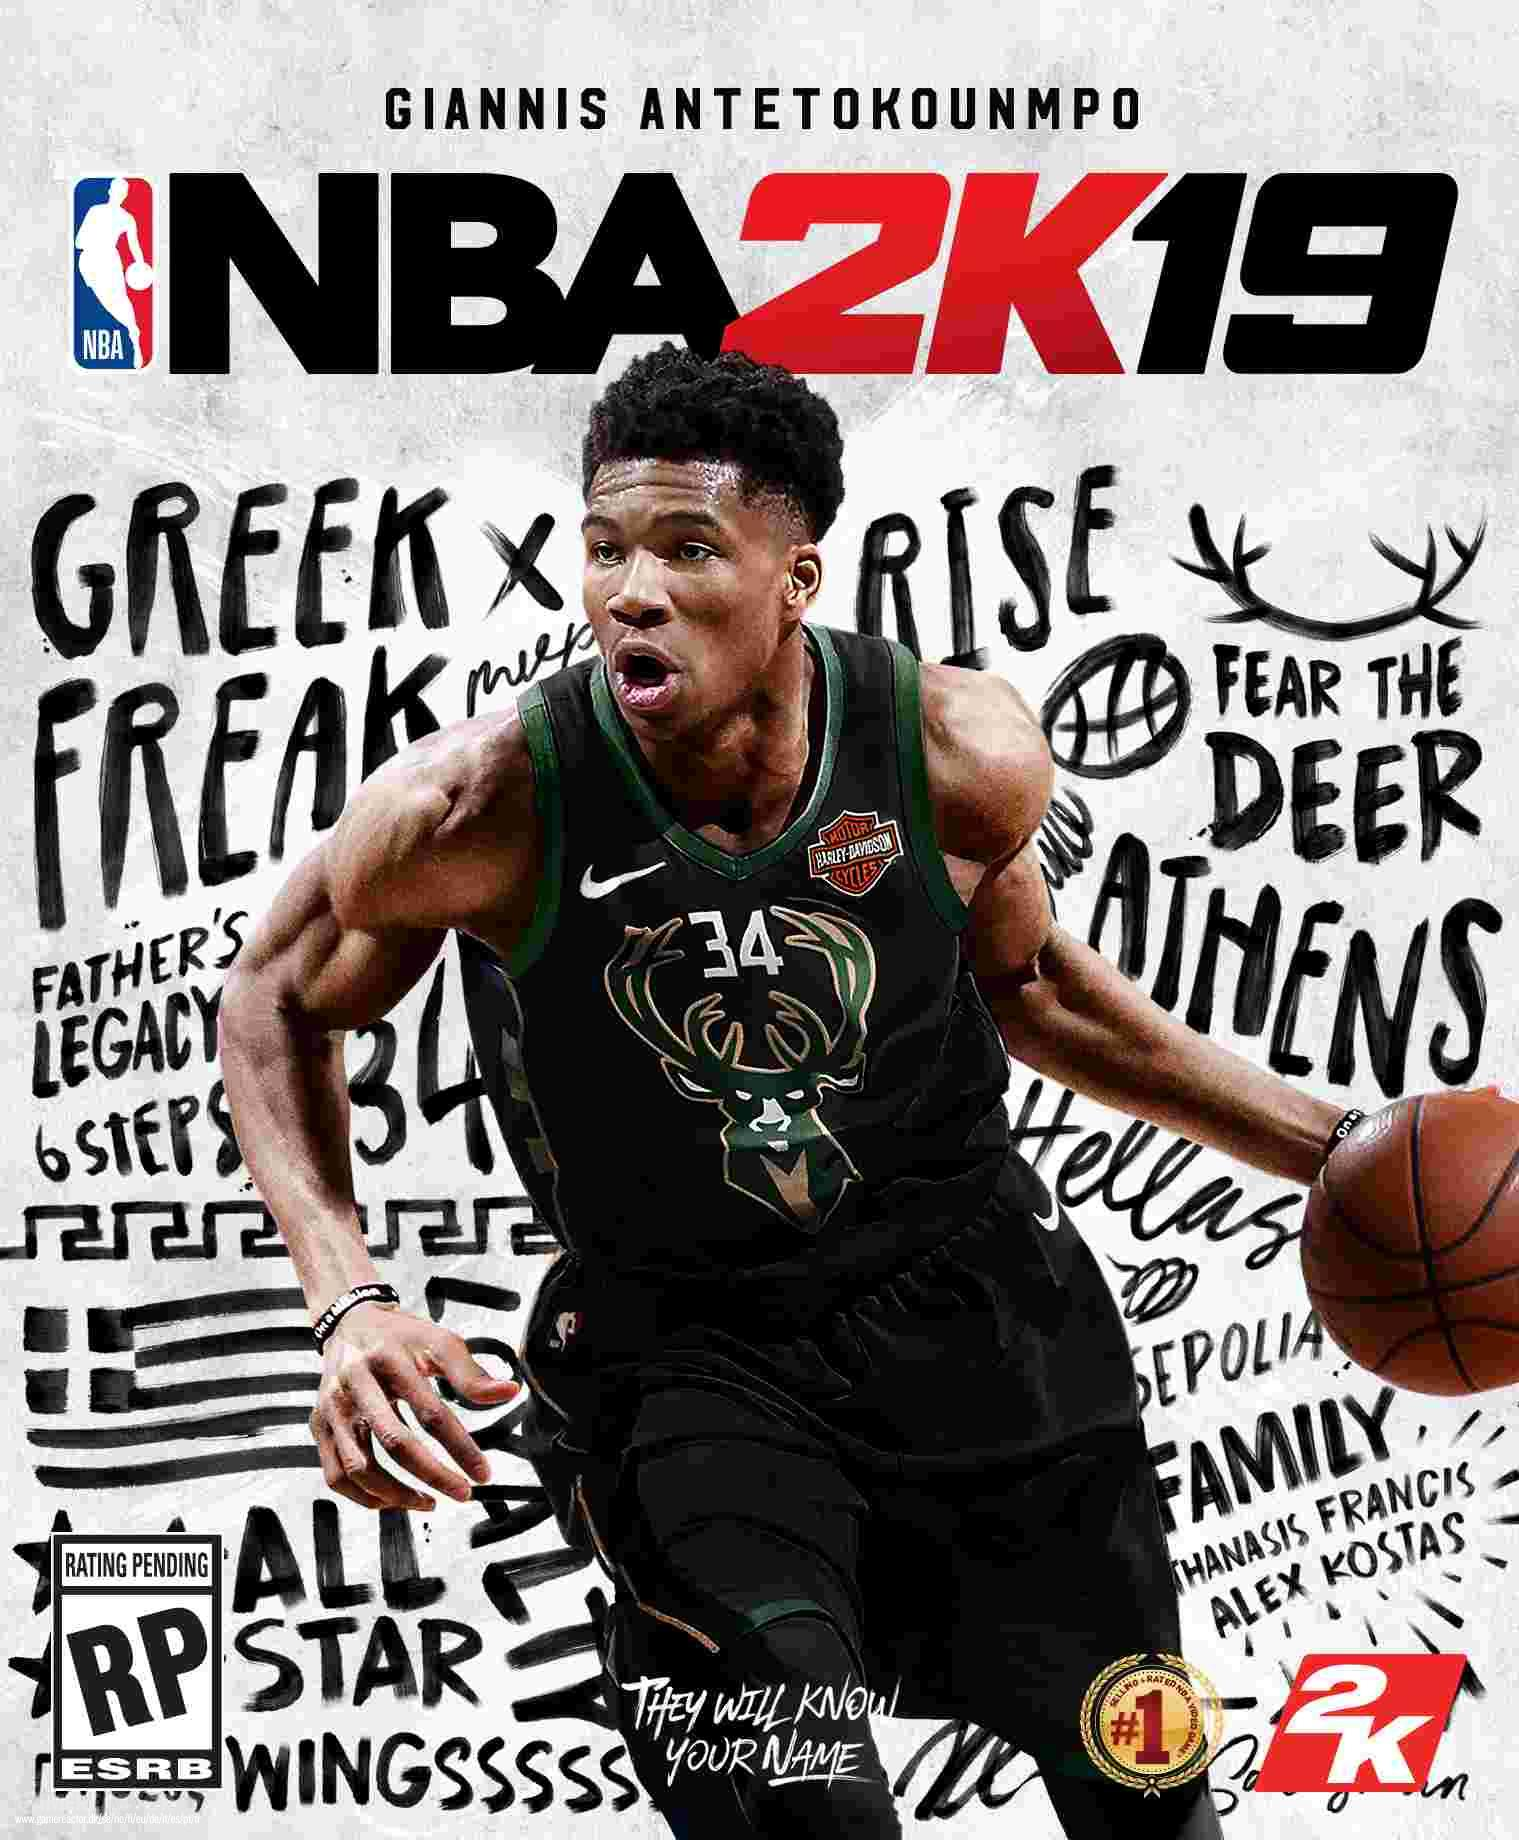 Pictures Of Nba 2k19 Cover Stars Giannis Antetokounmpo 1 4